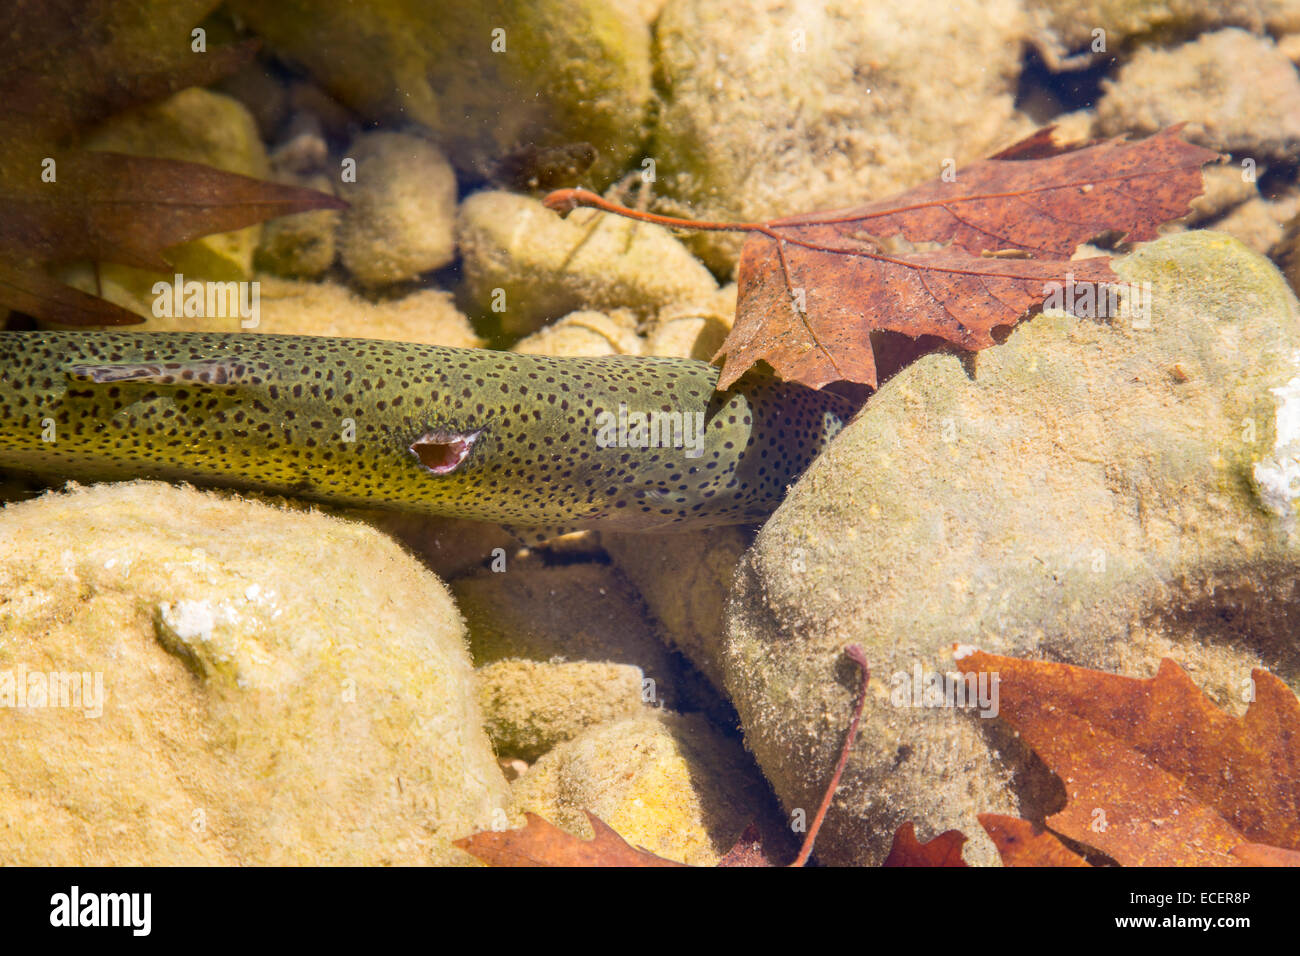 Injured trout fish is hiding under the stone in the river water - Stock Image